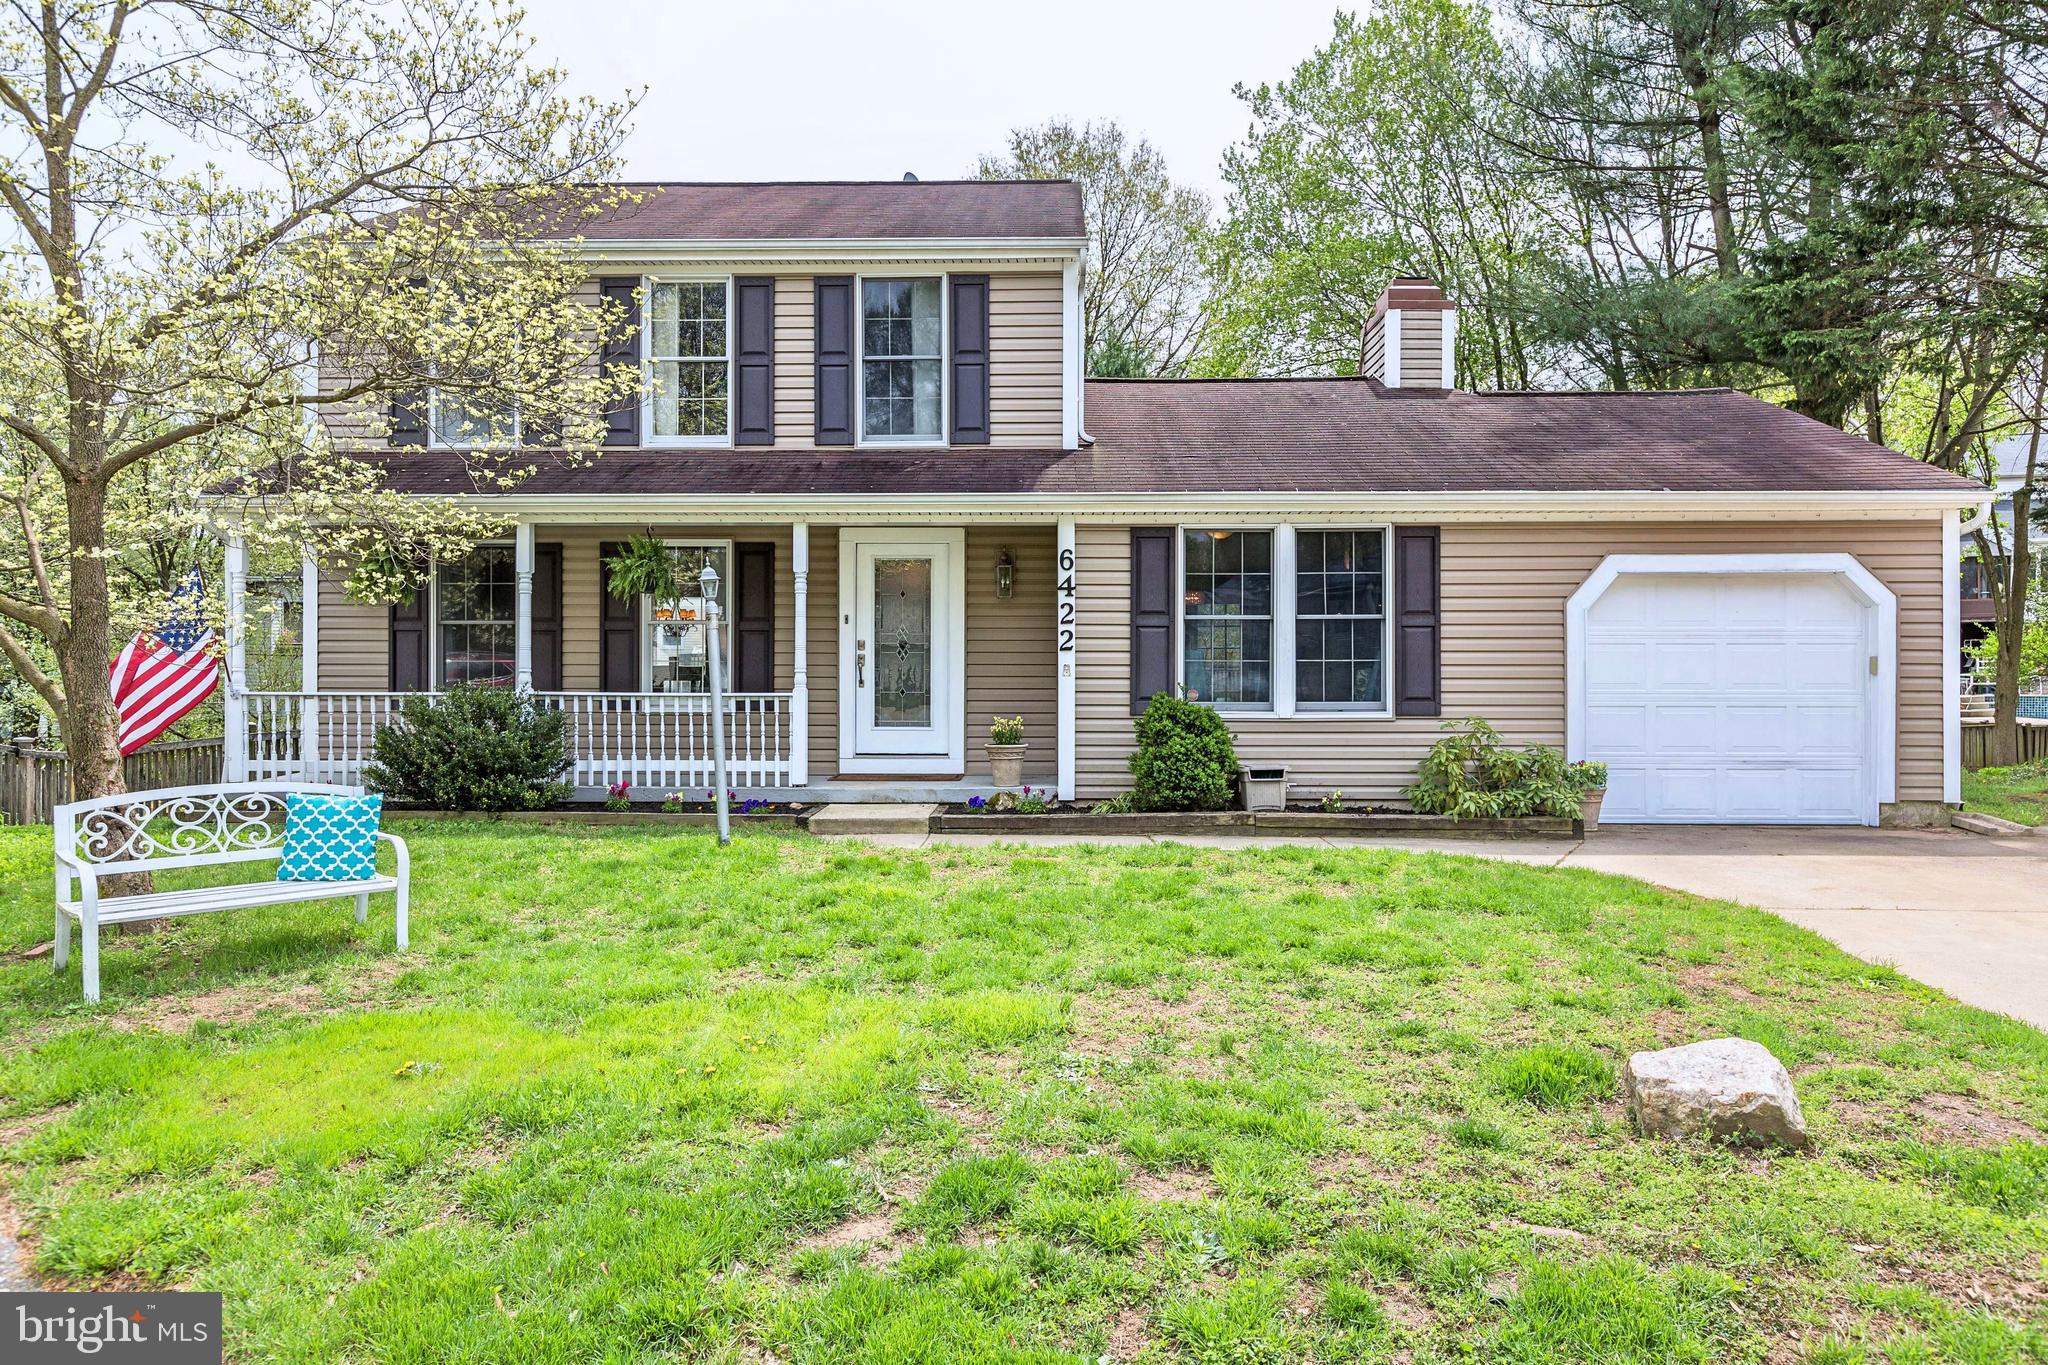 6422 WHITE PEACH PLACE, COLUMBIA, MD 21045